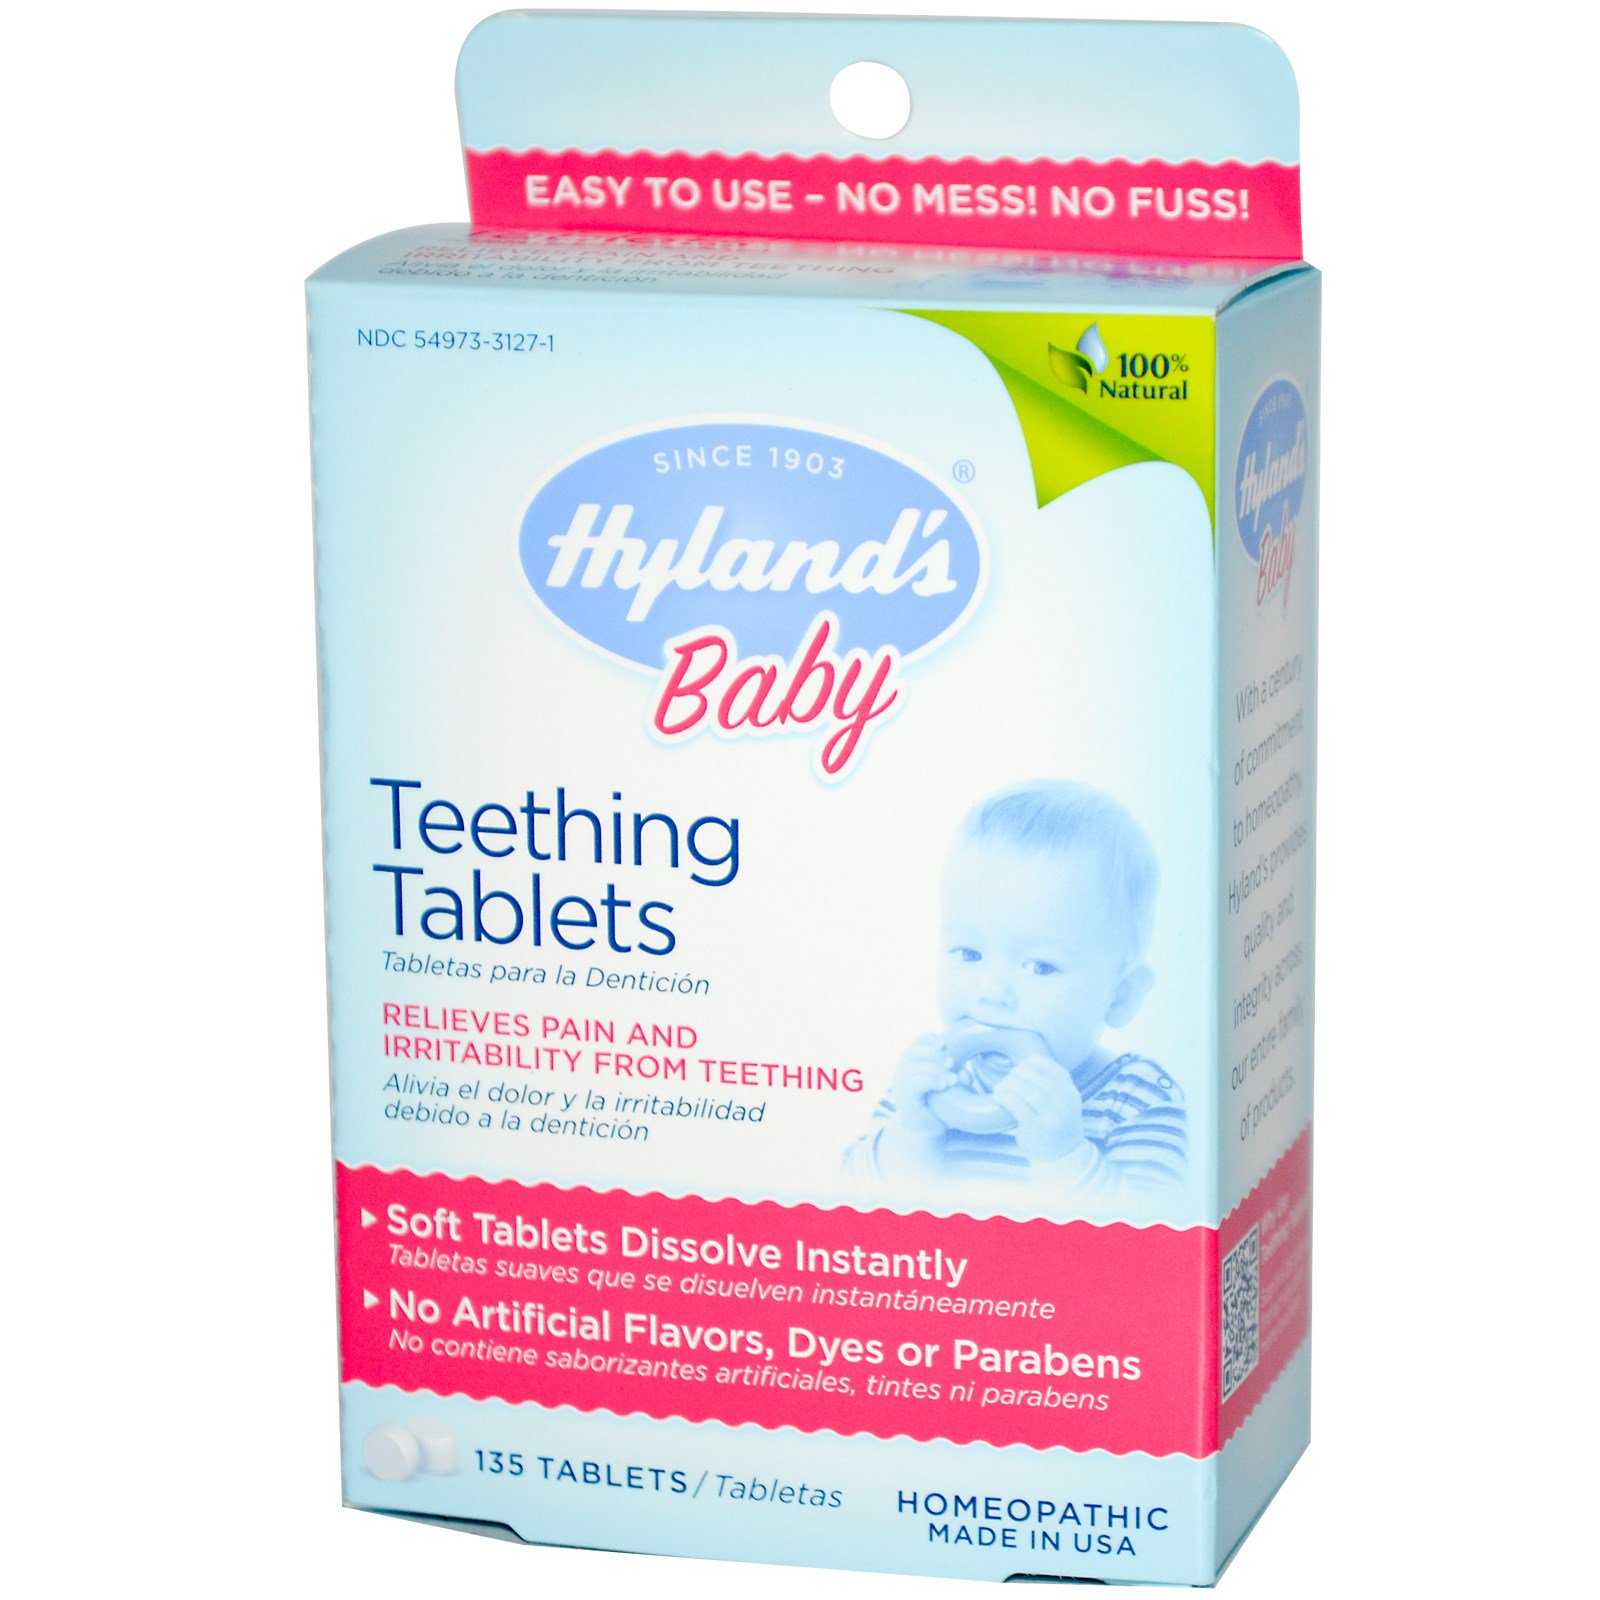 FDA Confirms Elevated Belladonna Levels in Teething Tablets